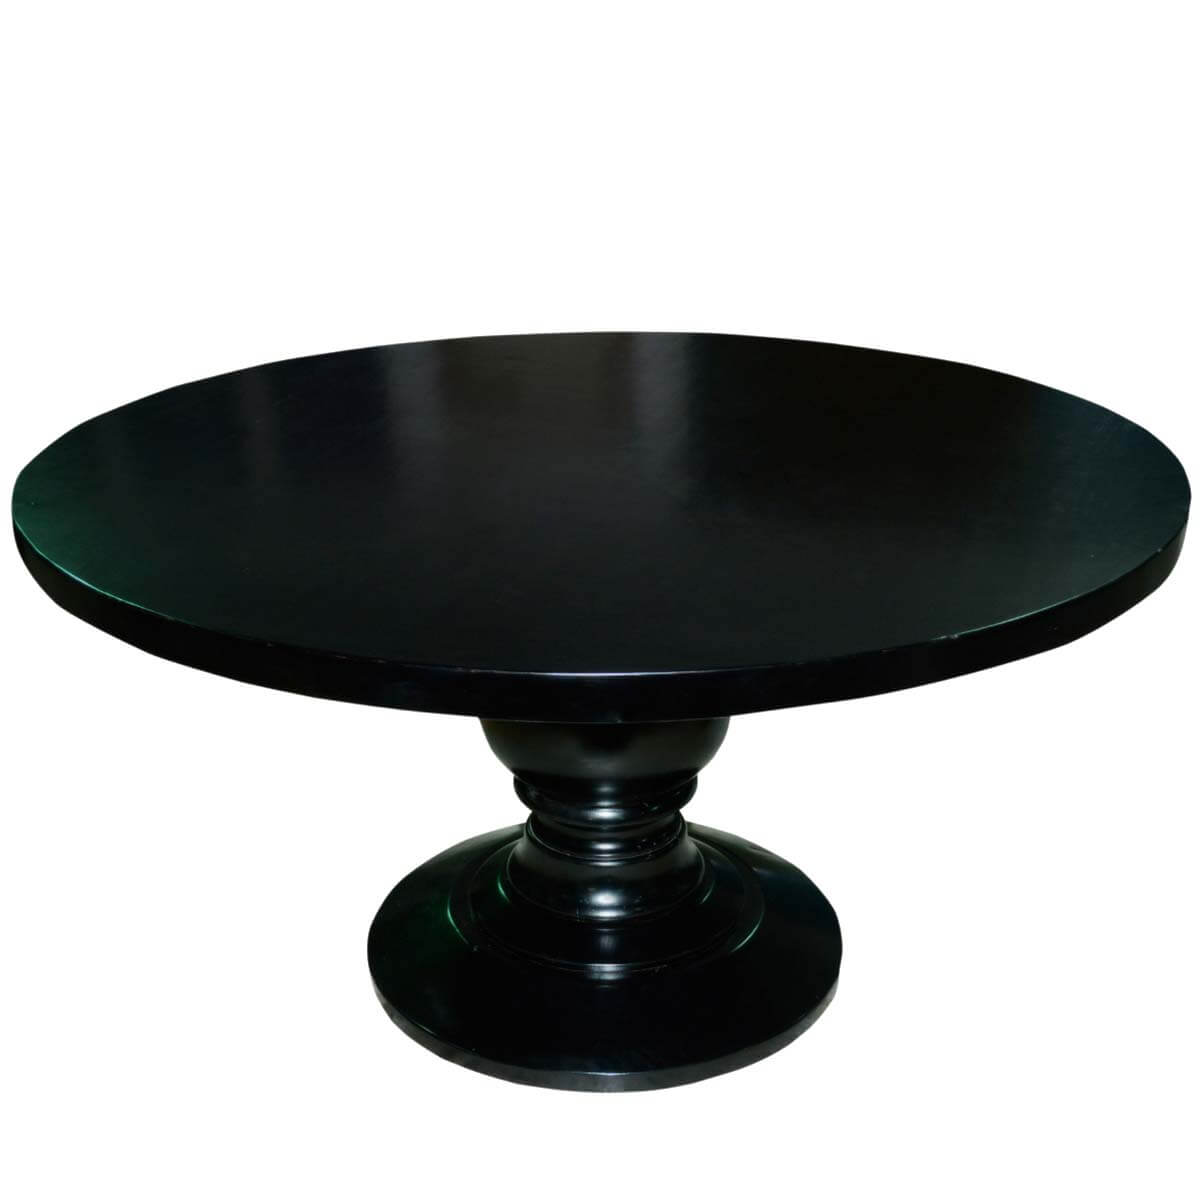 Sutton Black Baluster Pedestal Traditional Wood Round Dining Table Ebay